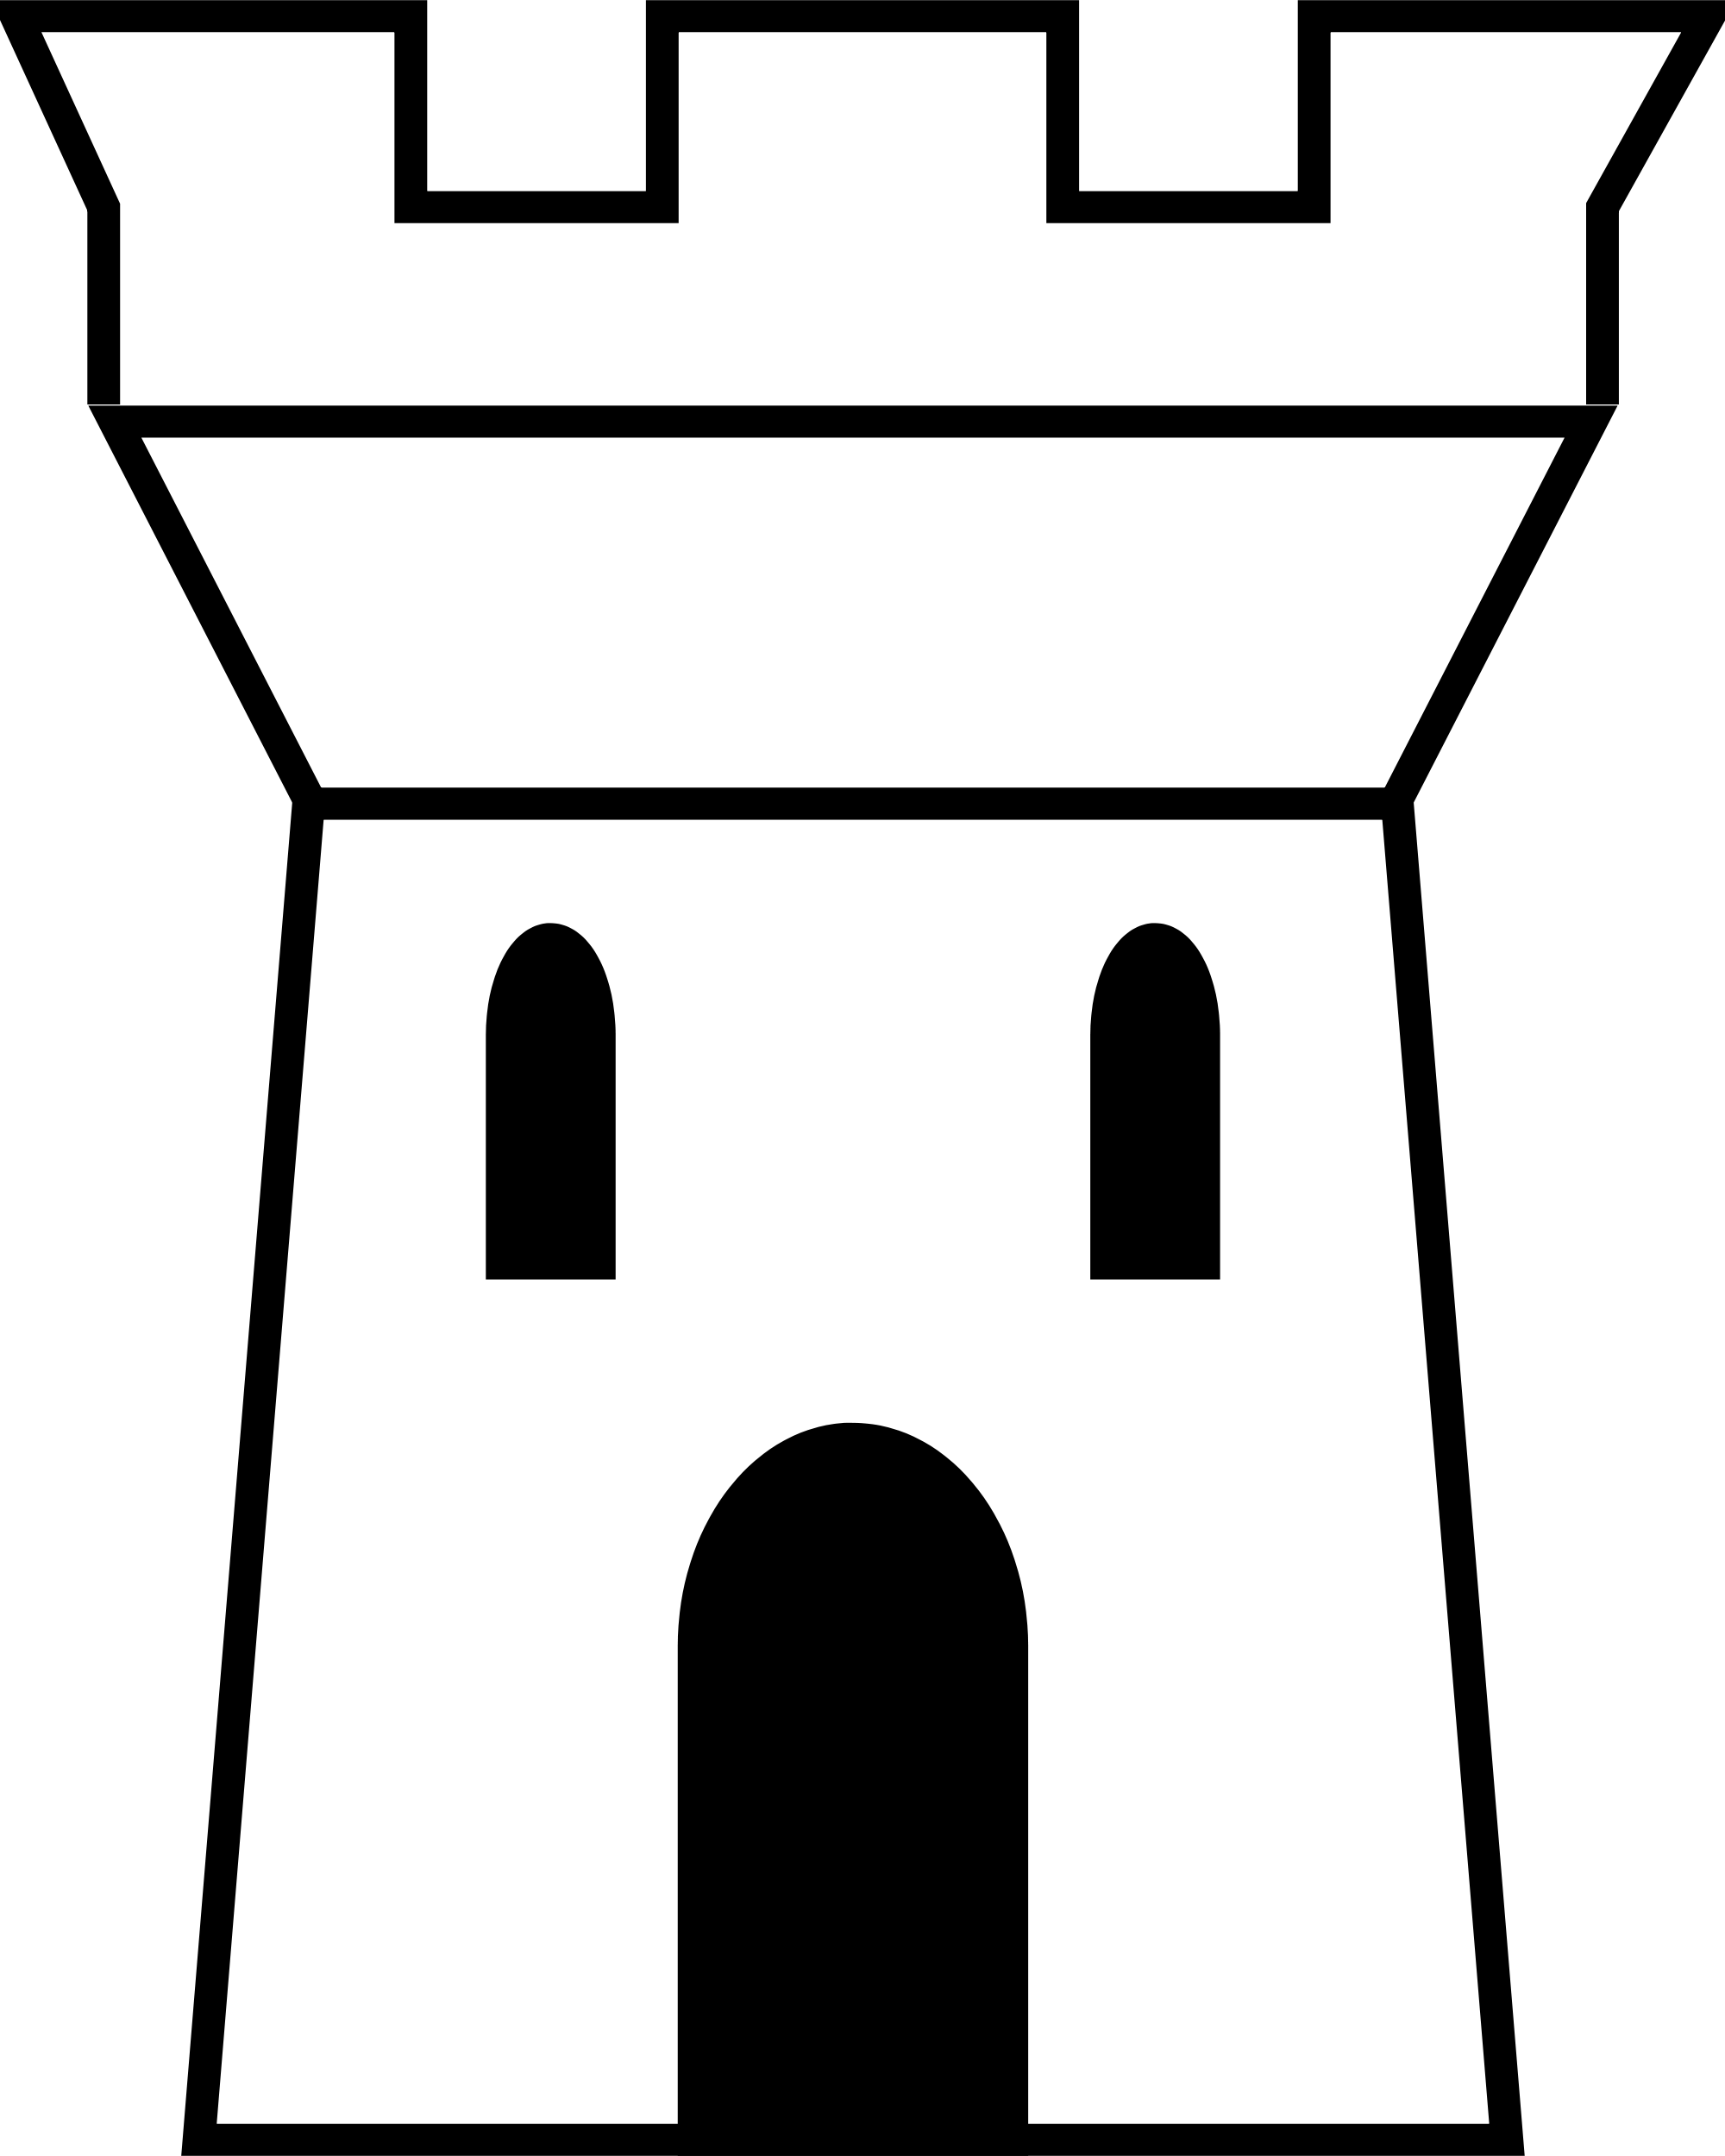 Tower clipart fortress, Tower fortress Transparent FREE for.